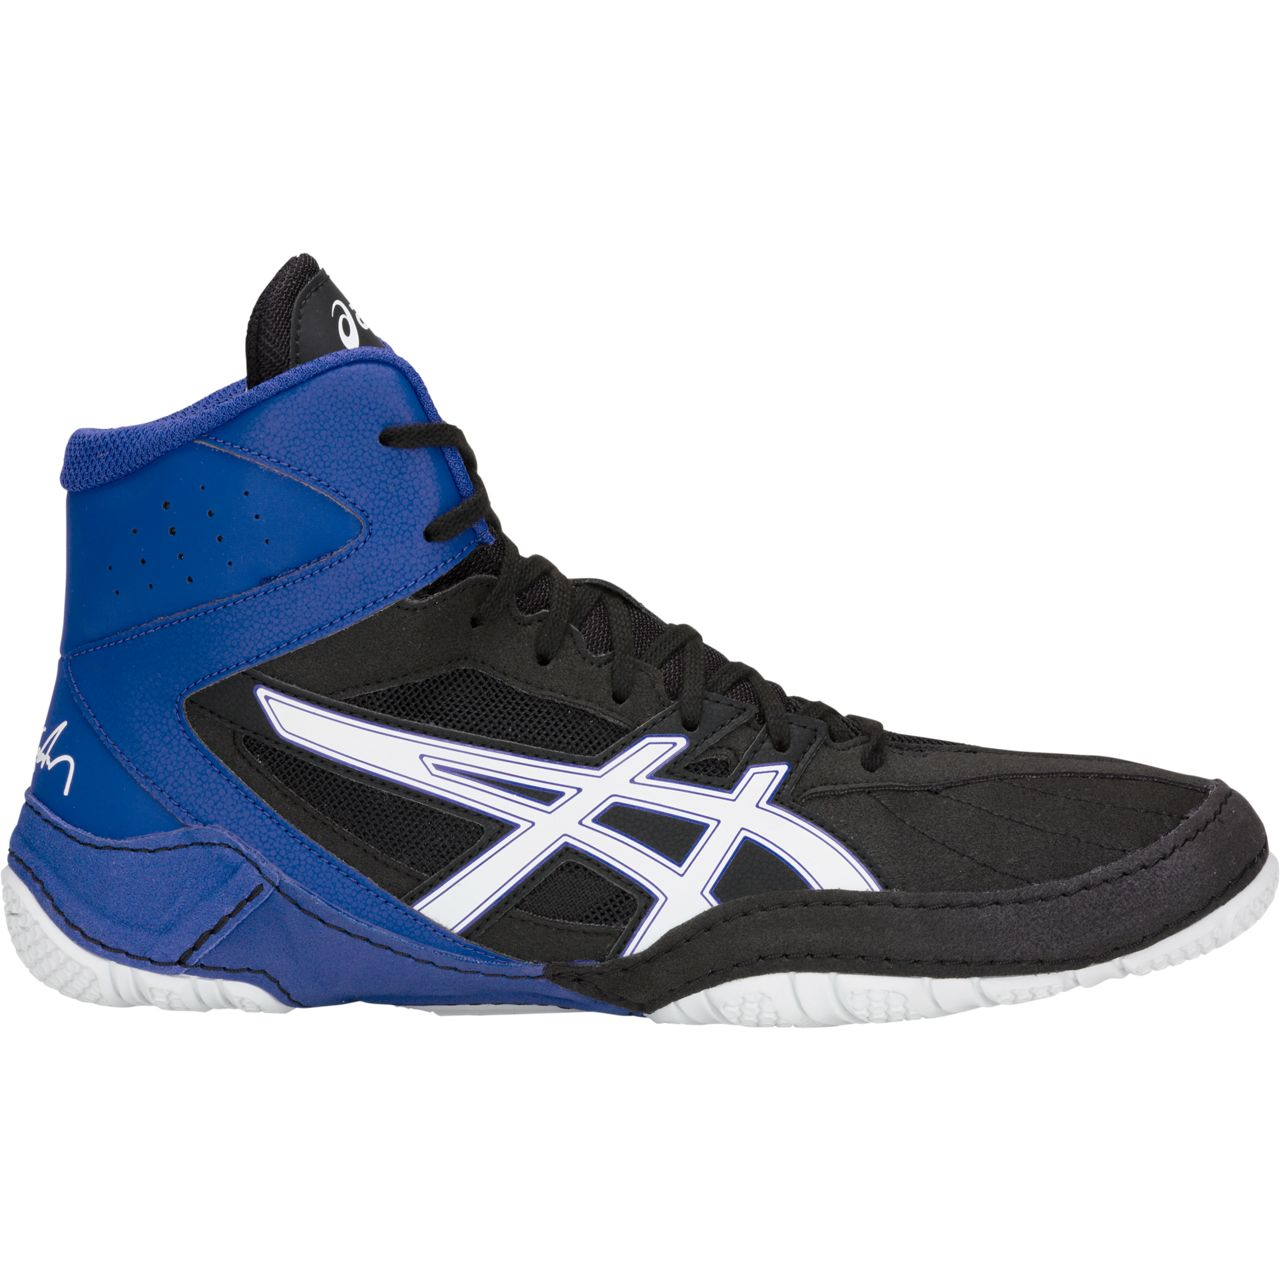 NEW!! ASICS® Cael® V8.0 Wrestling Shoes **** COLOR: (002) - Click Image to Close